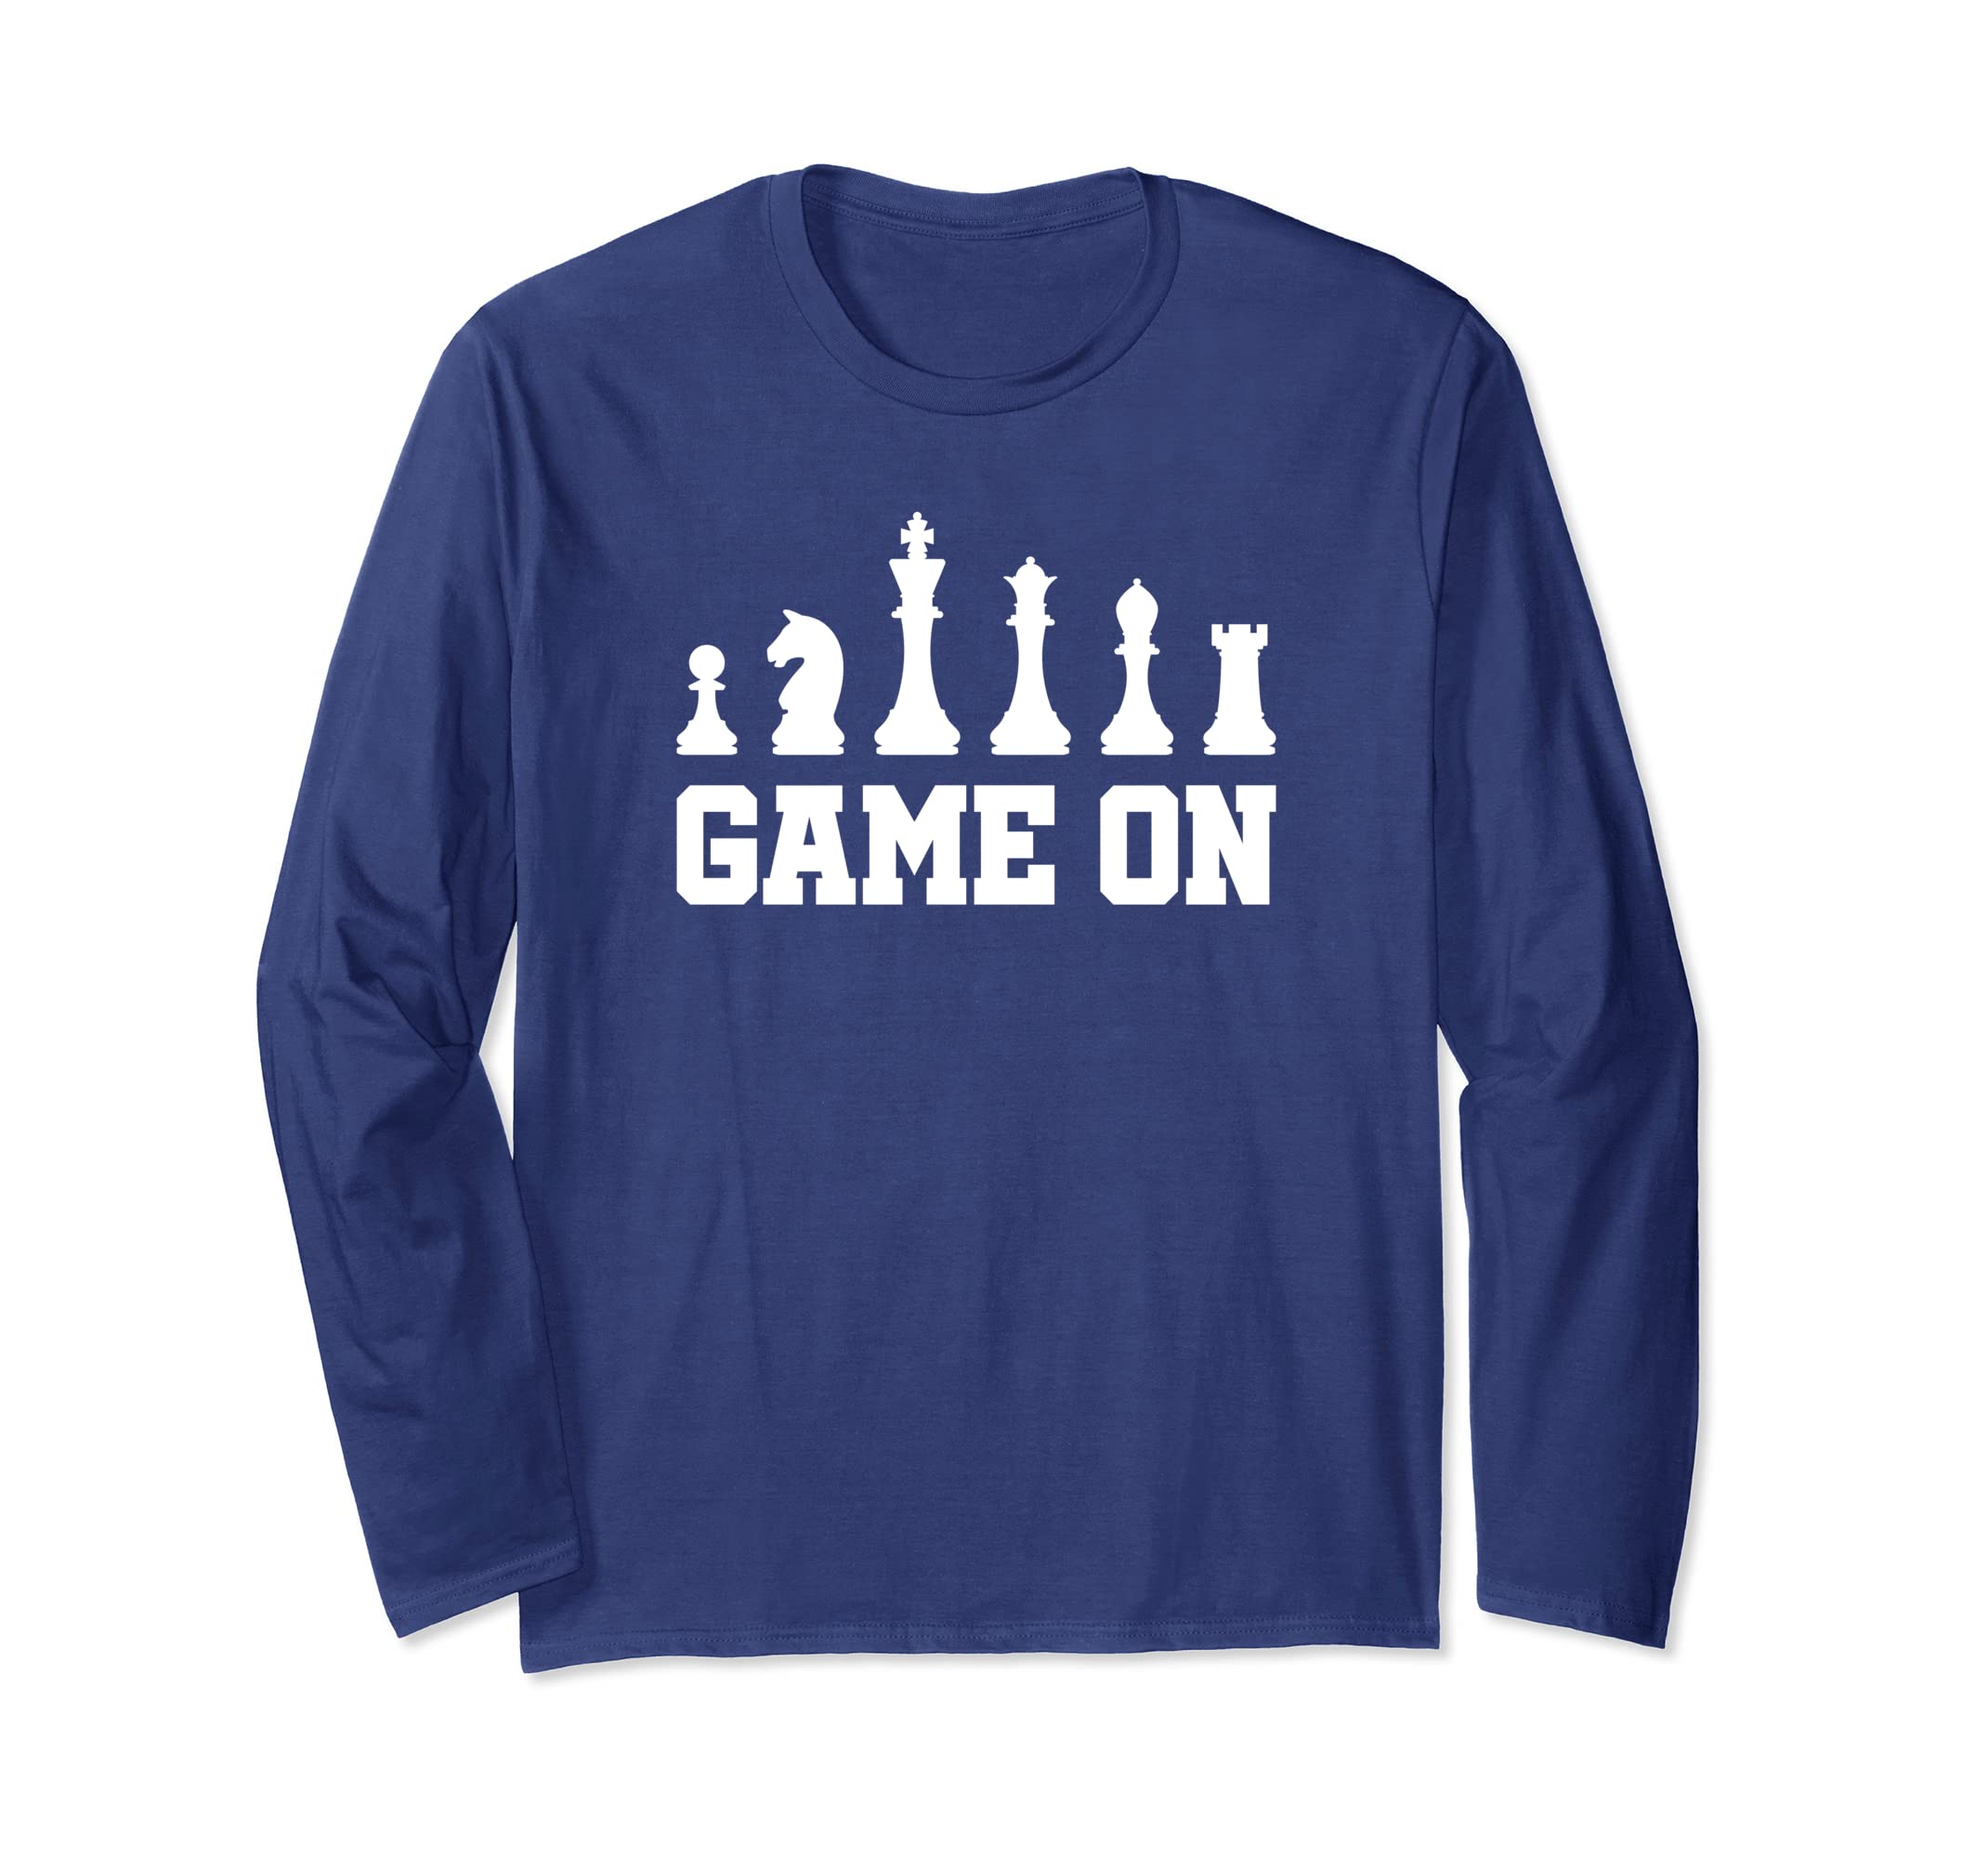 2d5d10a883 Amazon.com: Long Sleeve Chess Player Tee Shirt: Clothing